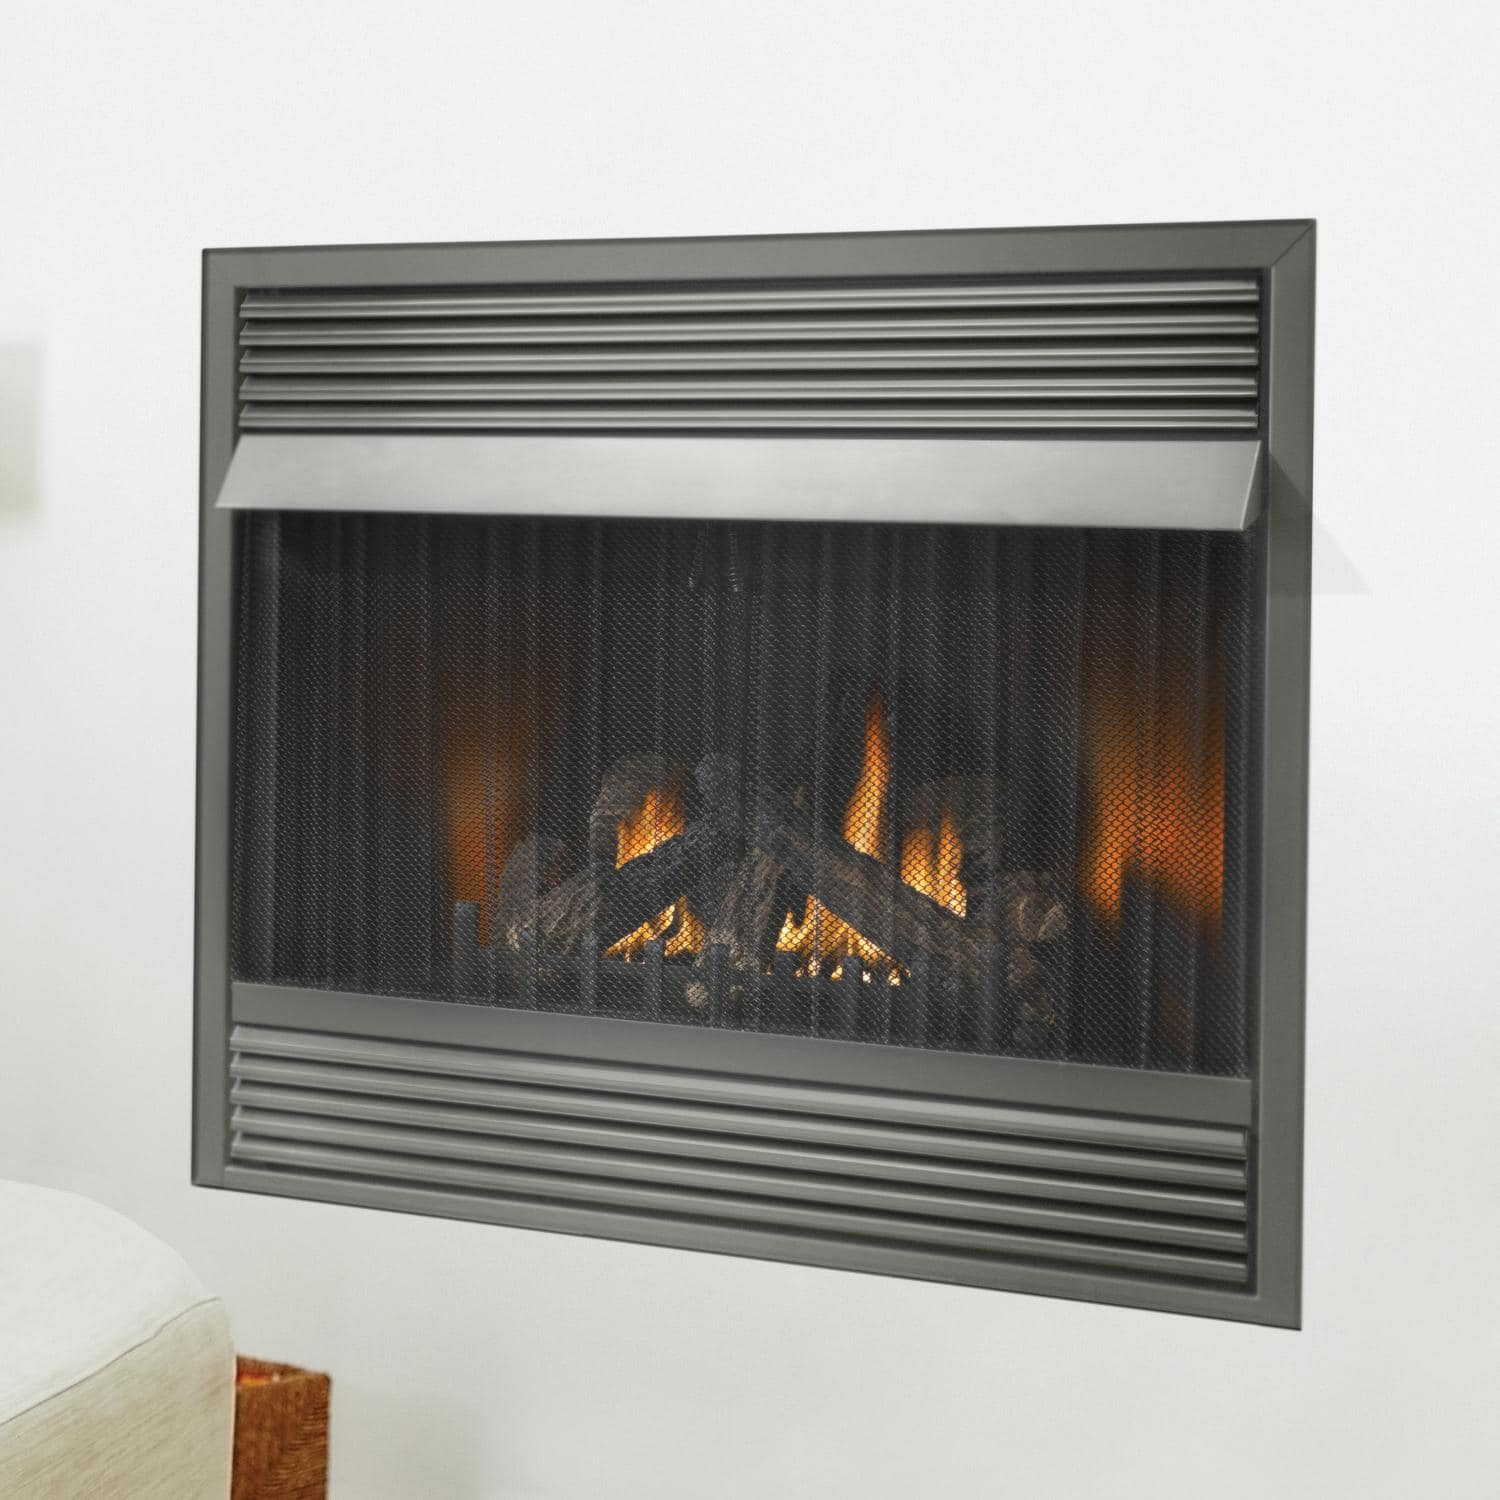 Napoleon Gas Fireplaces Napoleon Grandville 42 Inch Built In Vent Free Propane Gas Fireplace W Millivolt Ignition And Black Contour Louvres Gvf42 1p